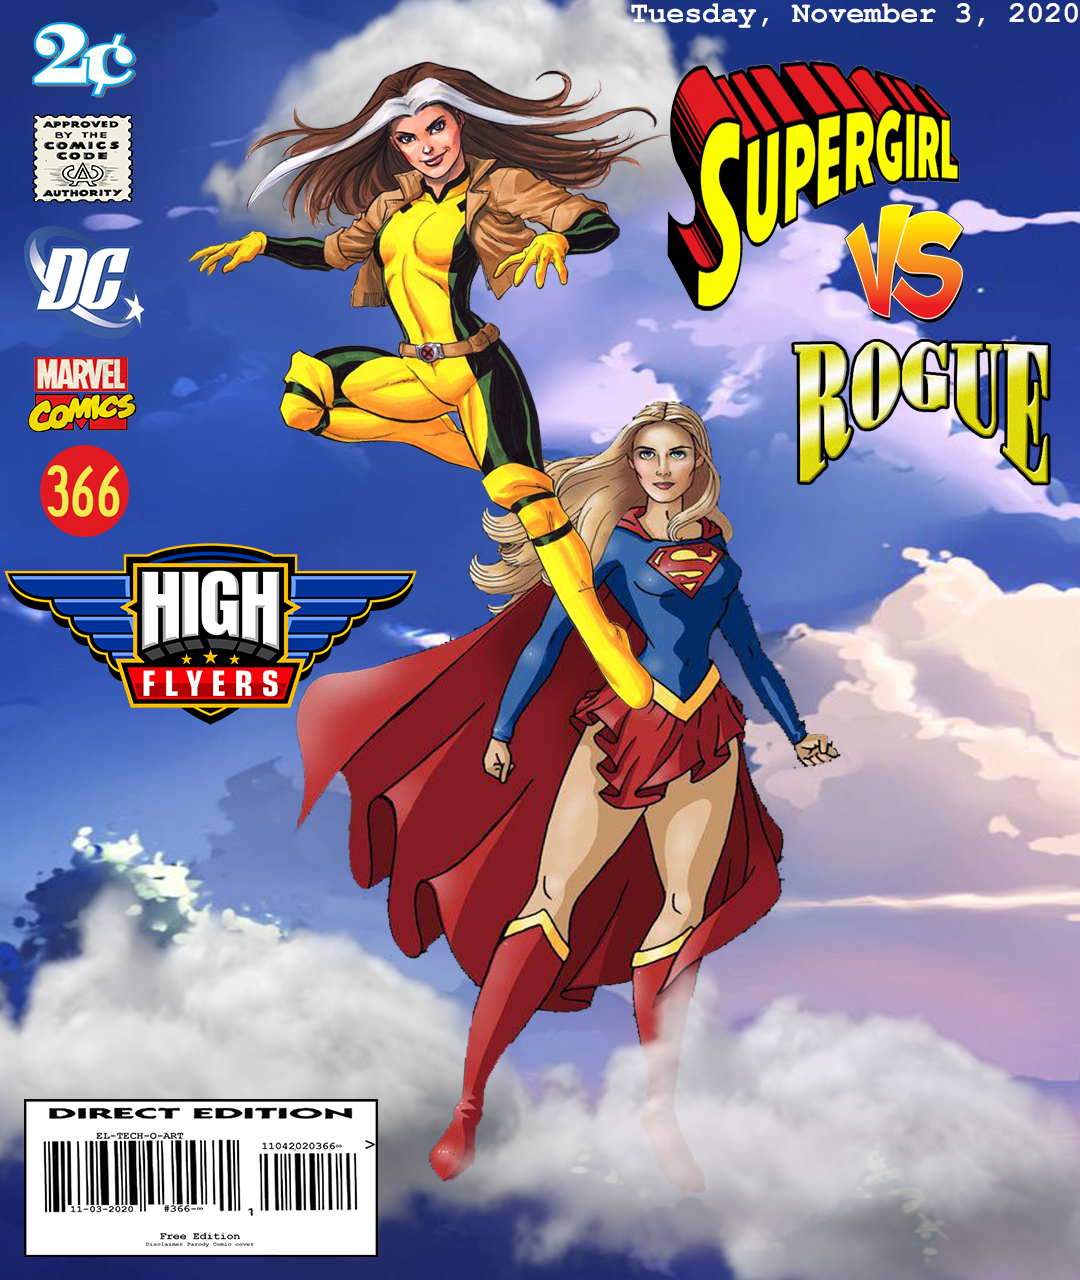 Fan Photoshop Edit Comic Cover Of Supergirl and Rogue